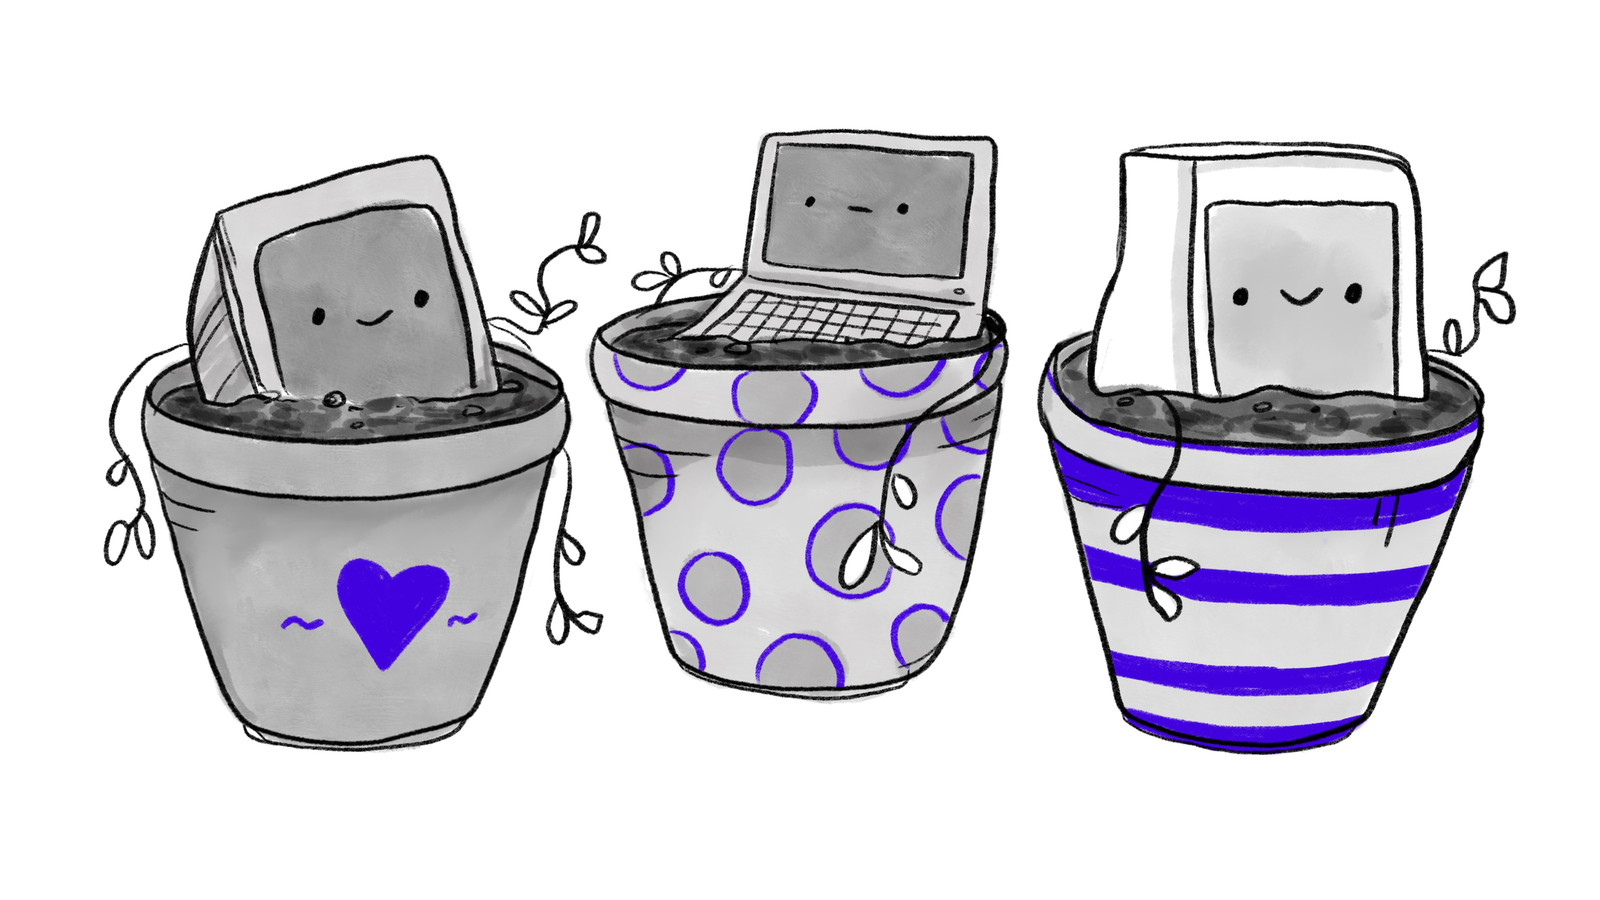 Three smiling computers growing out of colorful pots like little plants.